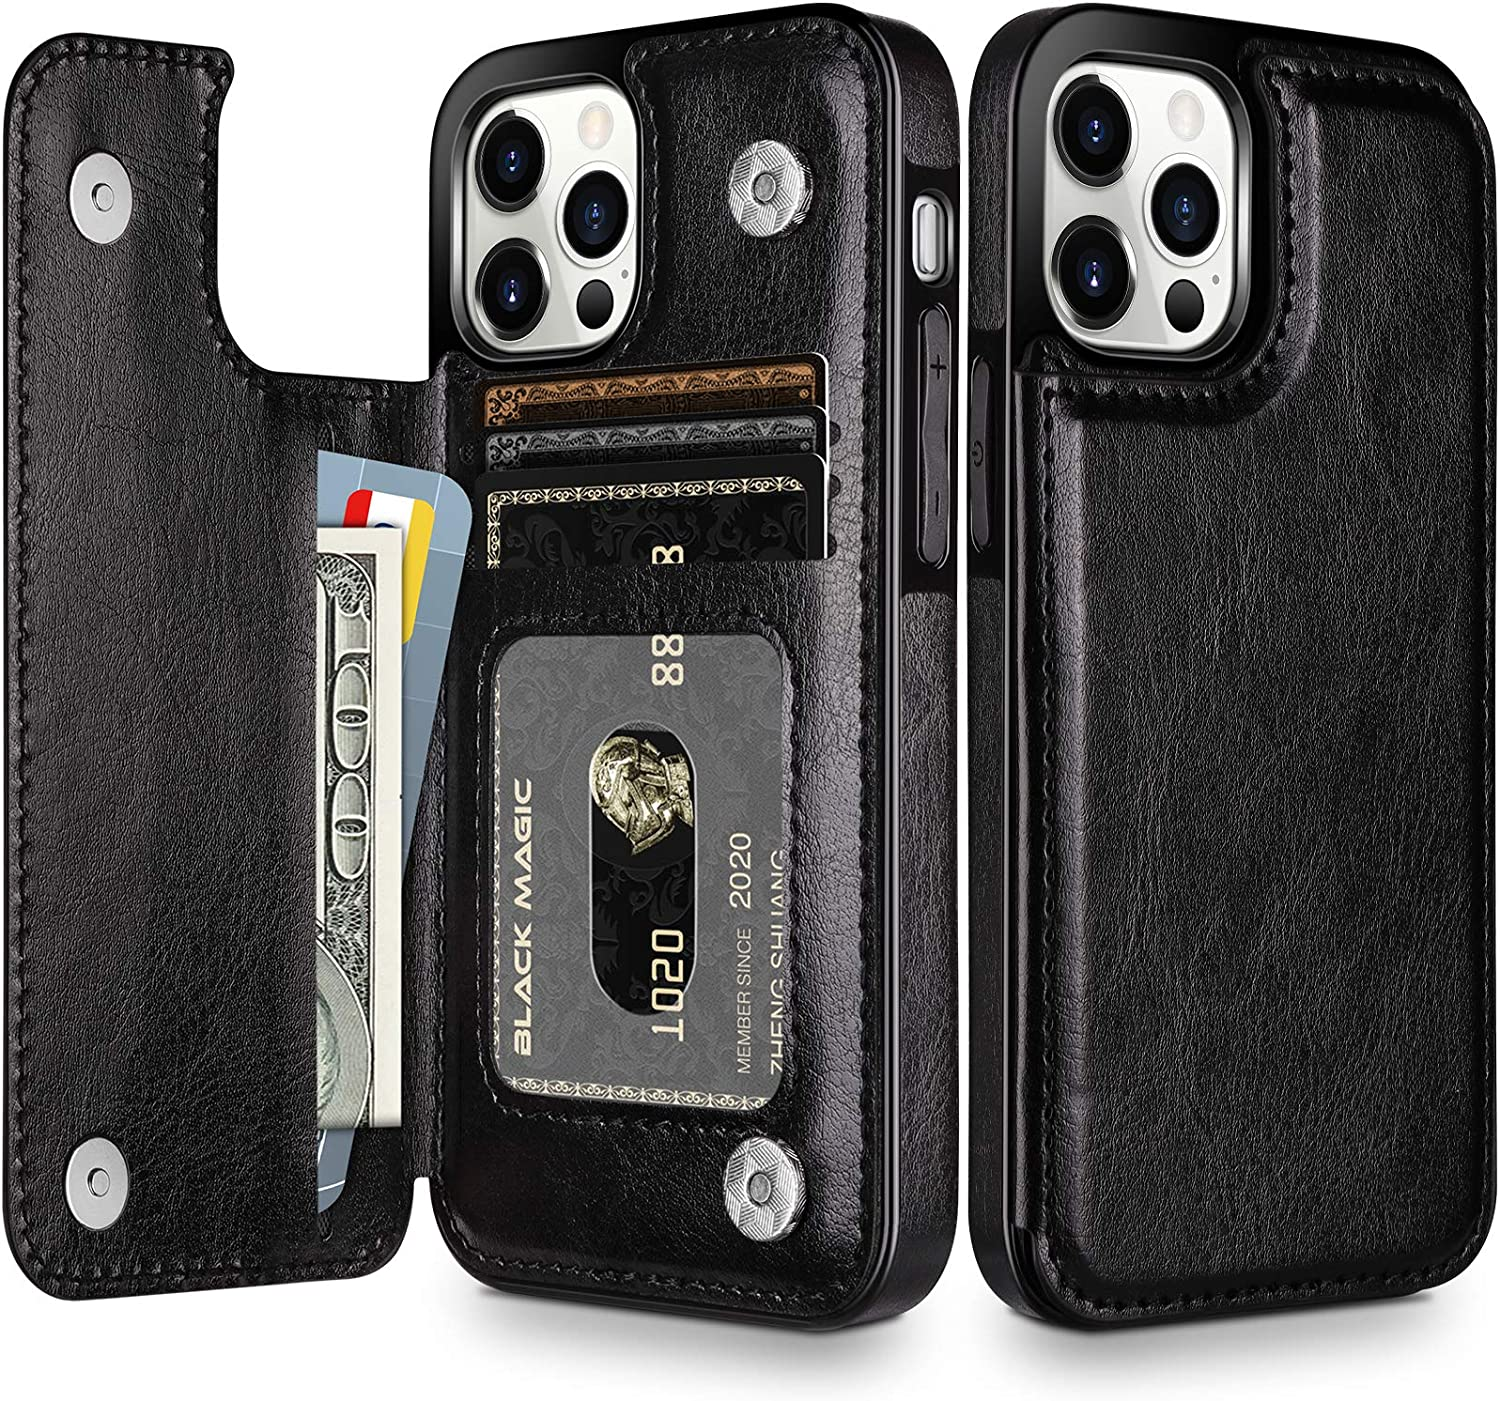 HianDier Wallet Case Compatible with iPhone 12 Pro MAX Case 5G 6.7-inch Slim Protective with Credit Card Slot Holder Flip Folio Soft PU Leather Magnetic Closure Cover, Black